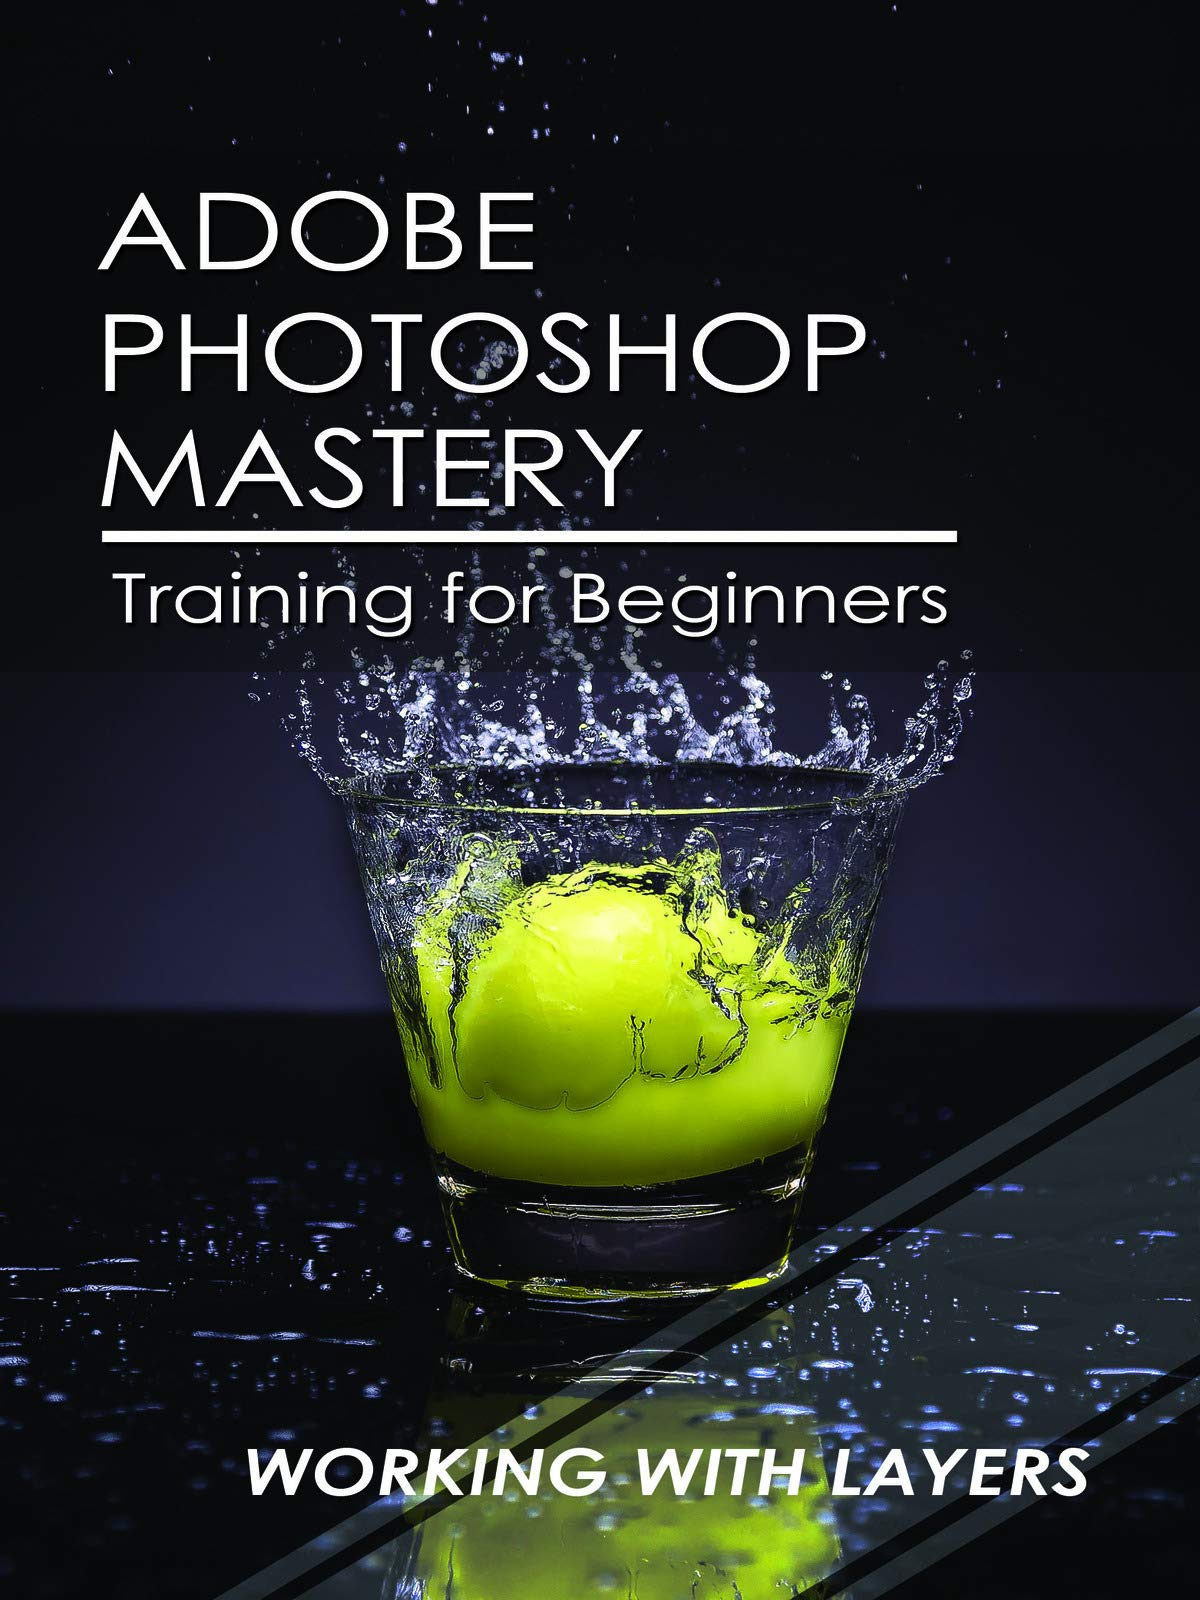 Adobe Photoshop Mastery Training For Beginners: Working With Layers